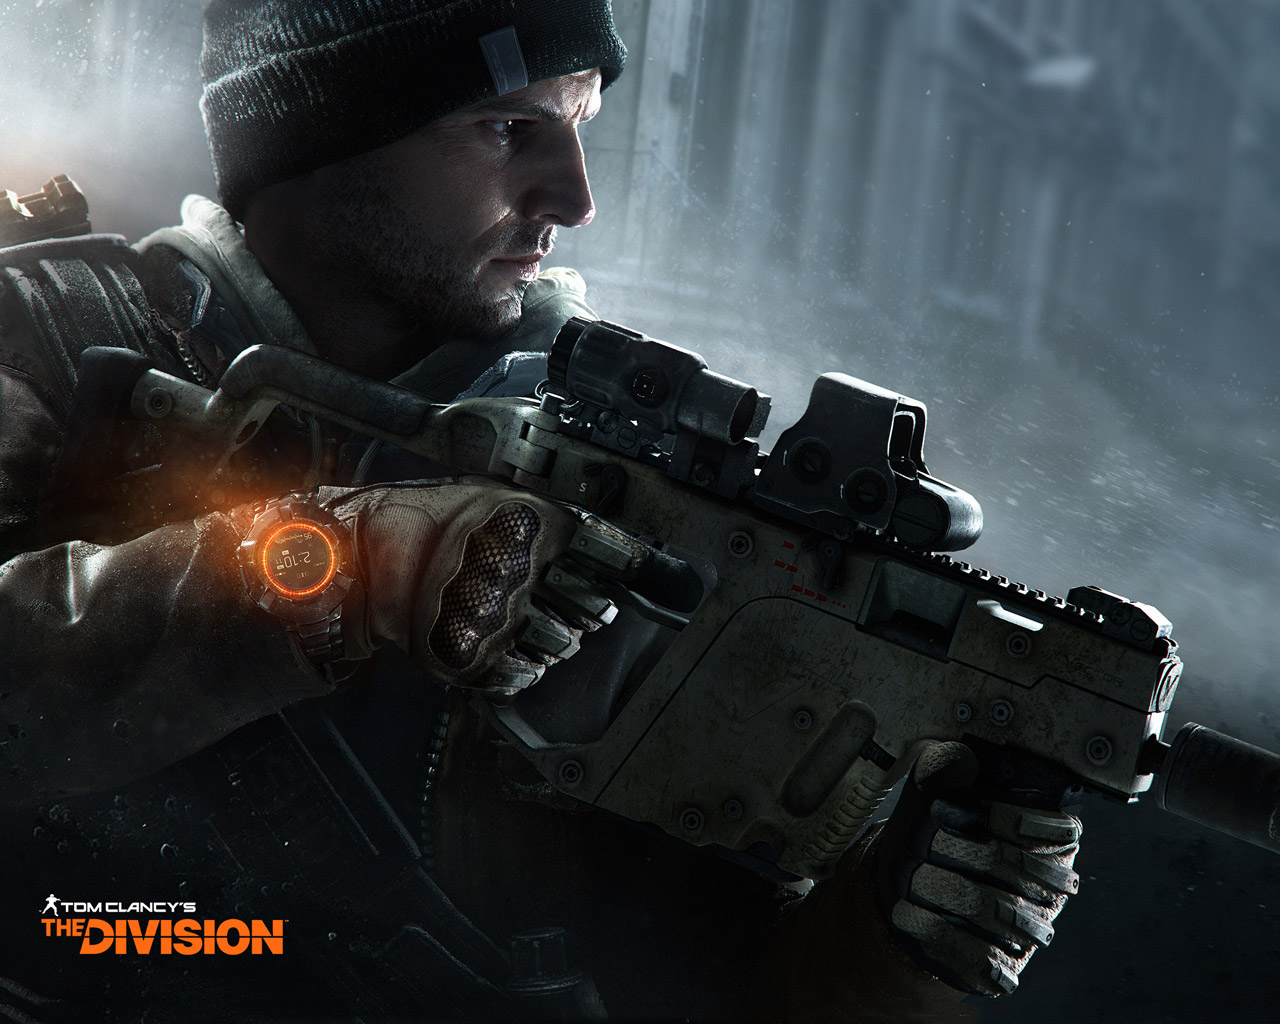 The Division Wallpaper in 1280x1024